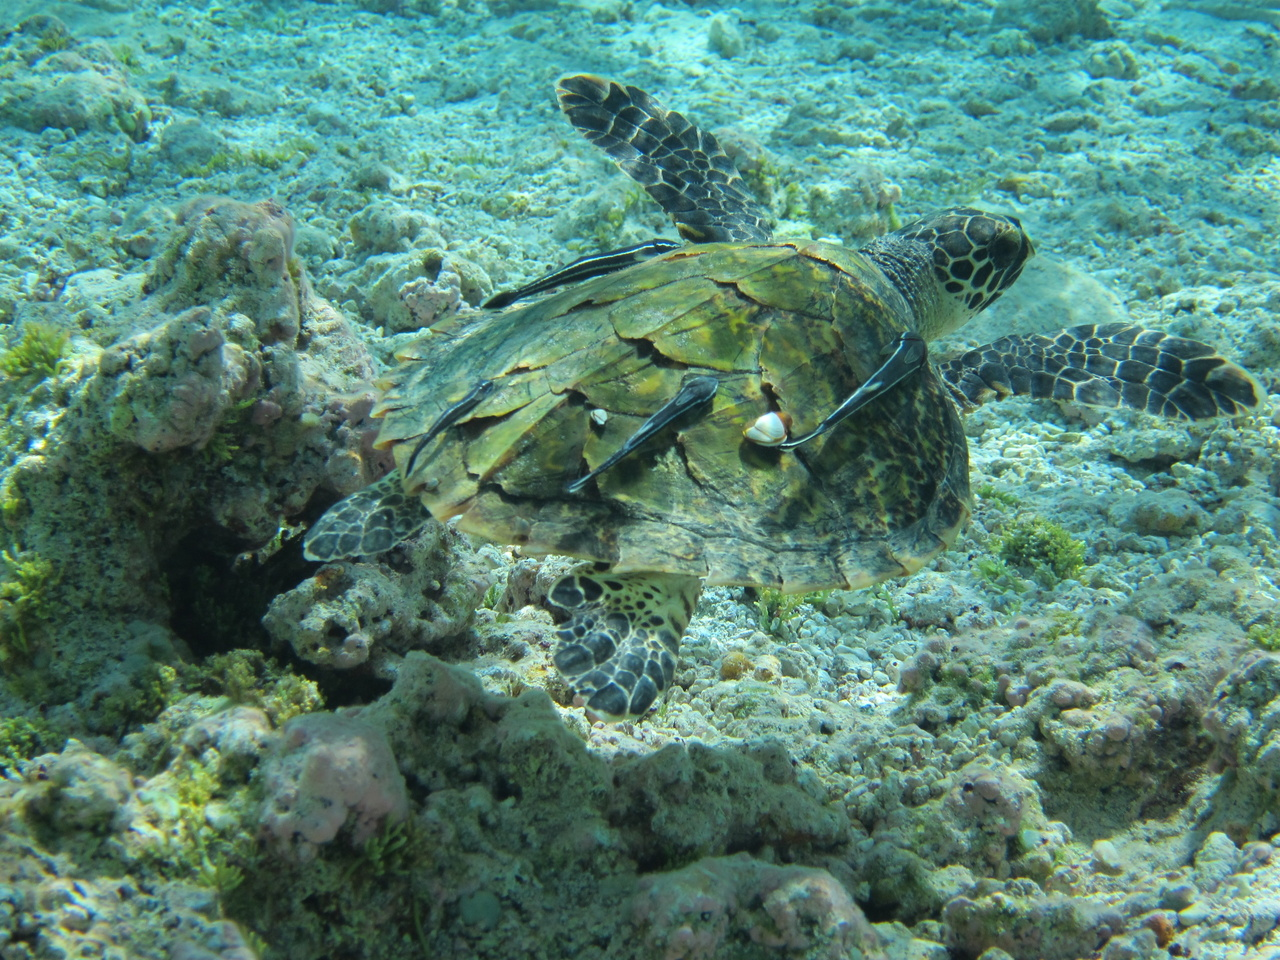 A juvenile hawksbill turtle glides over the top of coral reef habitat. Photo: NOAA Fisheries.